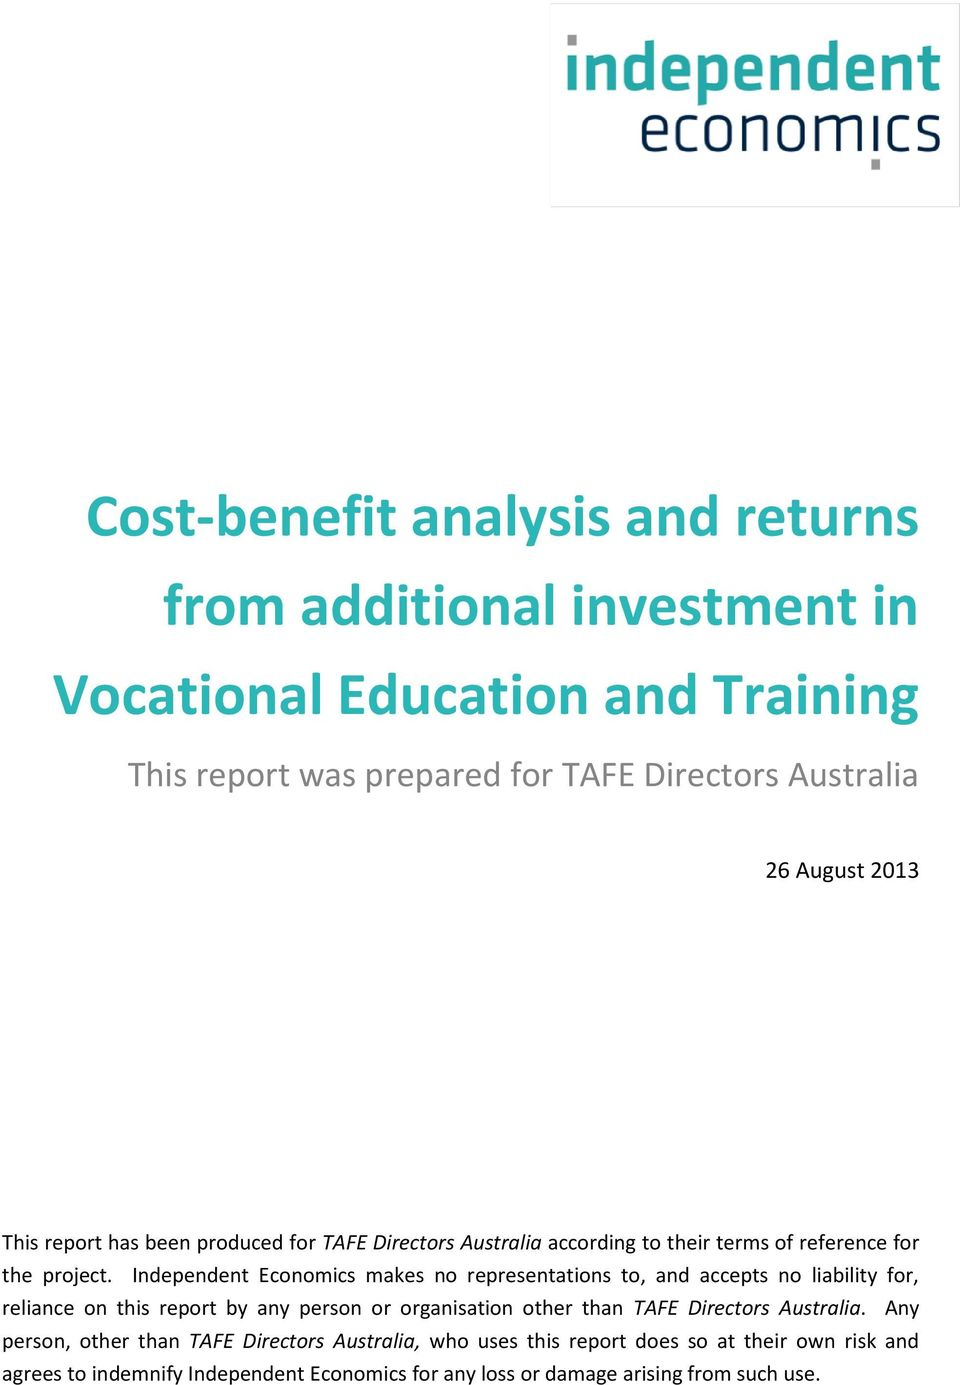 Independent Economics makes no representations to, and accepts no liability for, reliance on this report by any person or organisation other than TAFE